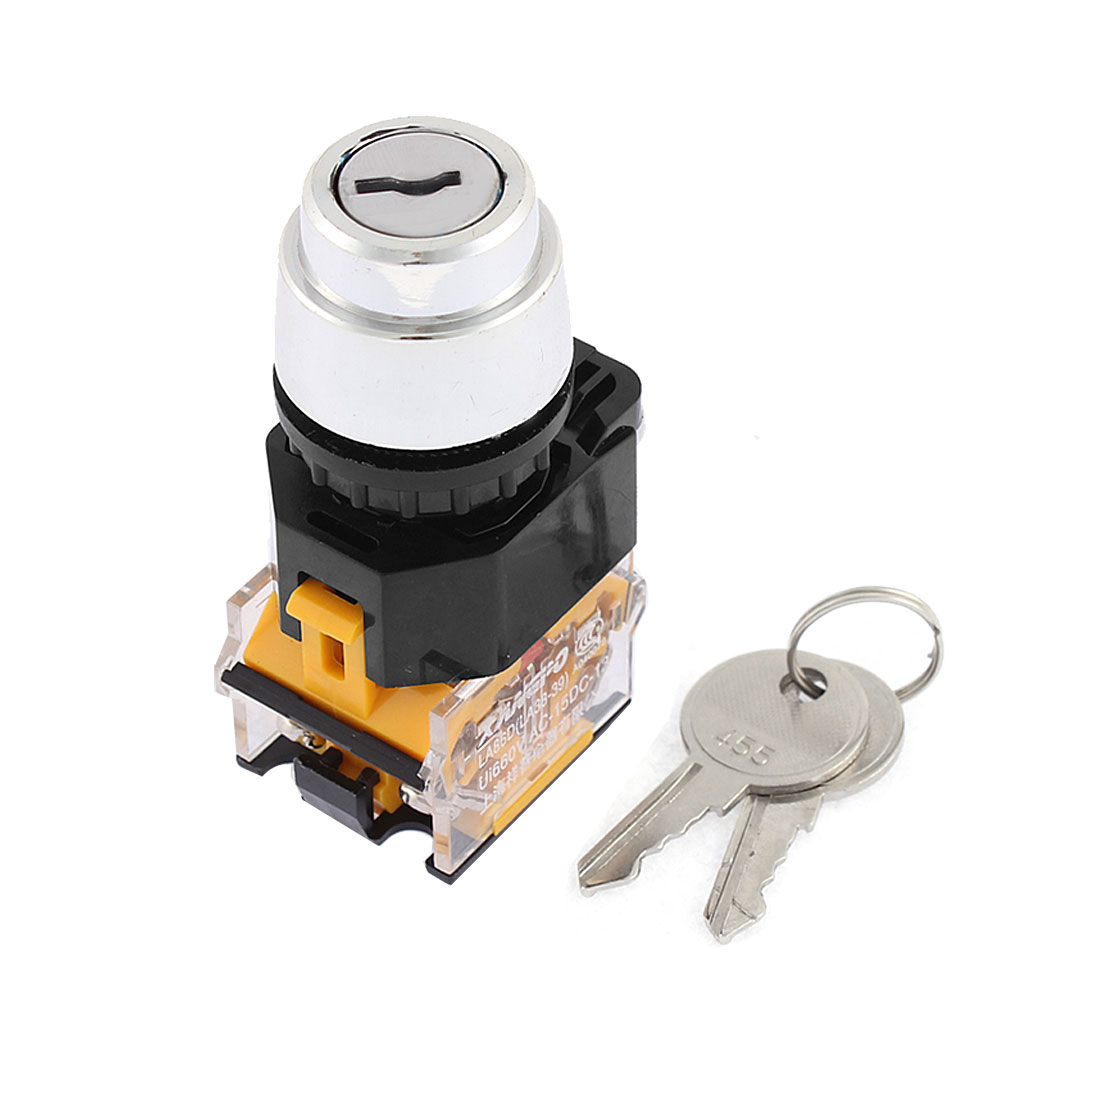 LA86D 2-Position Key Start Locking Momentary Power Switch AC 380V 10A